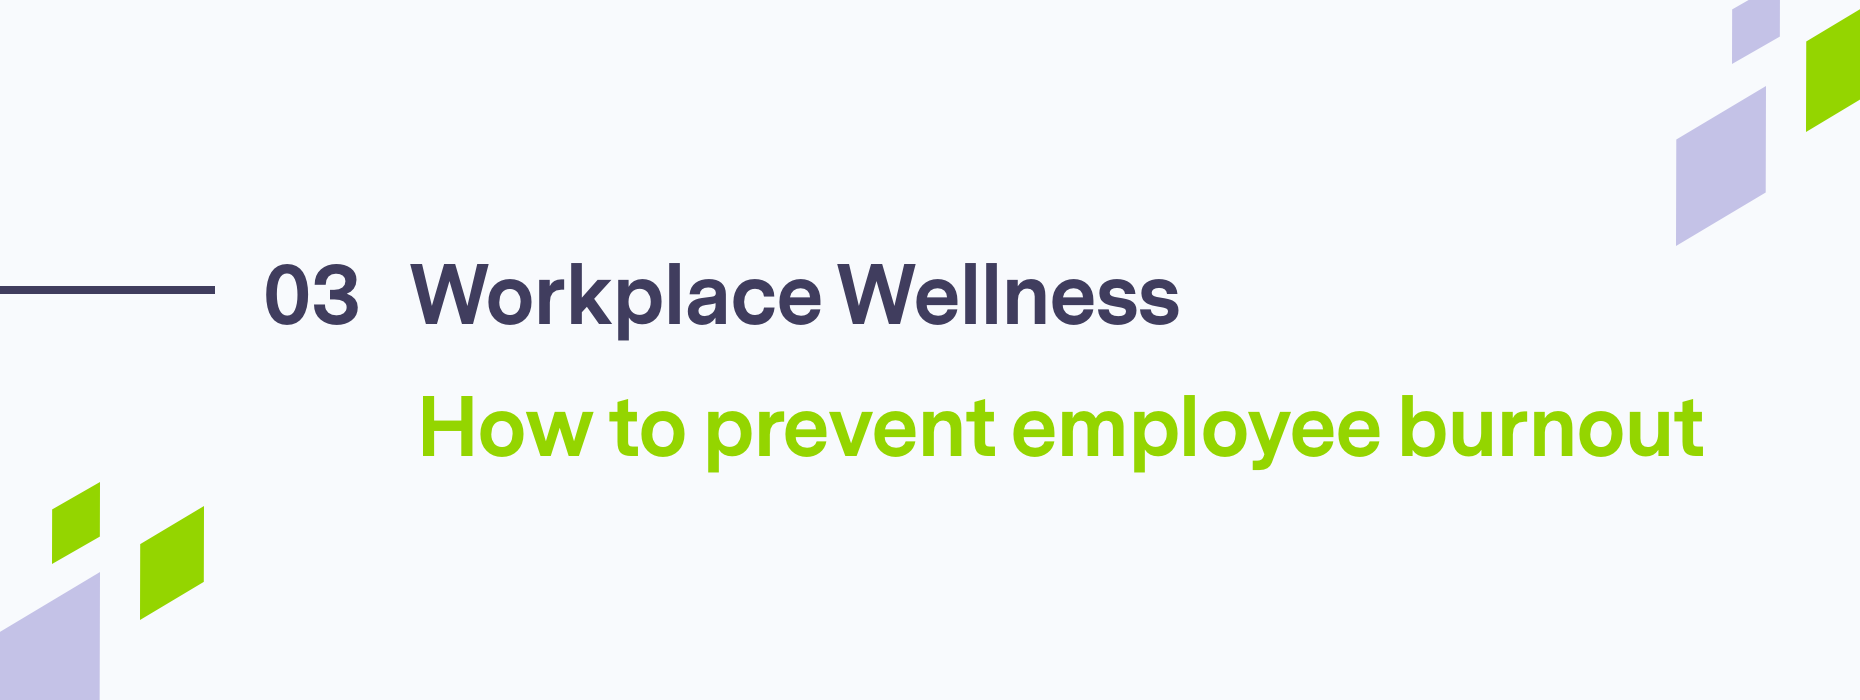 Text on employee burnout